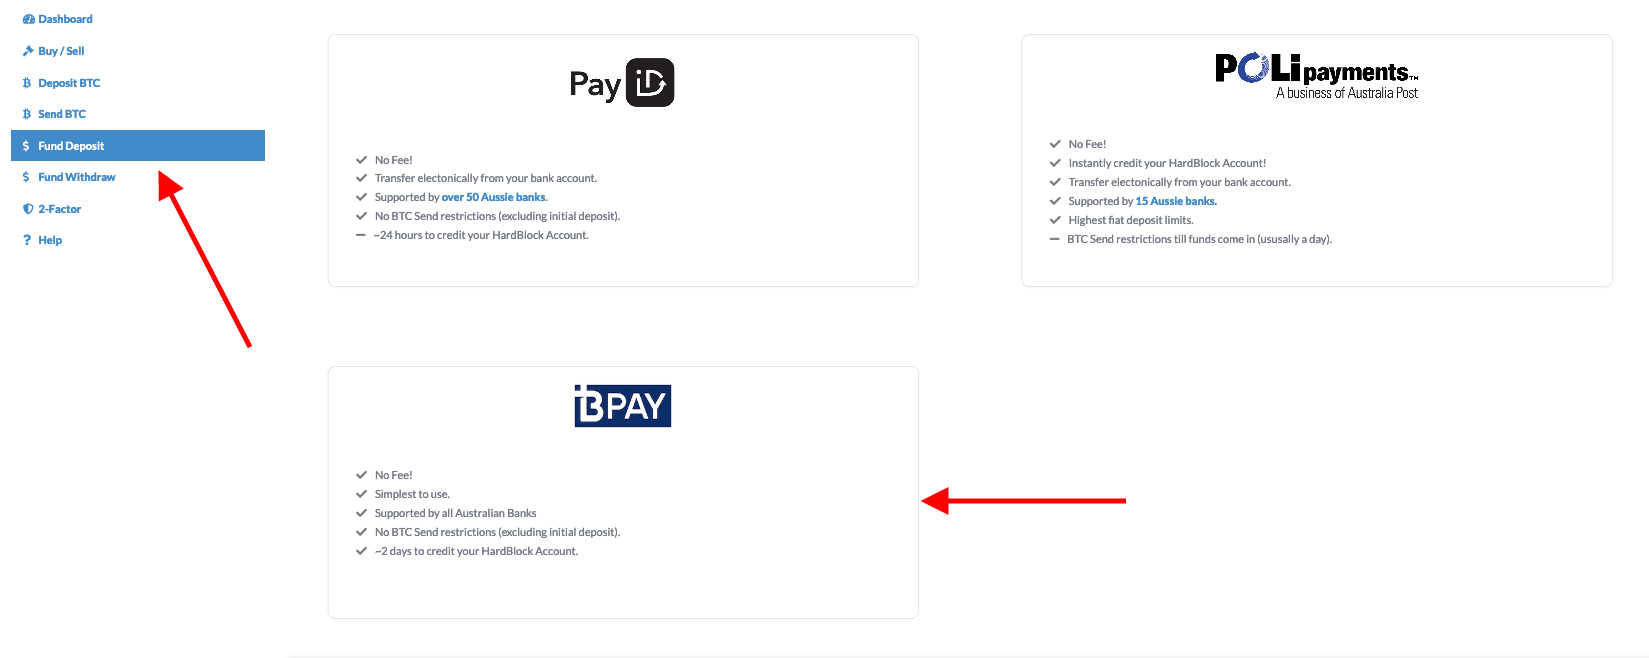 Choose BPAY as deposit method